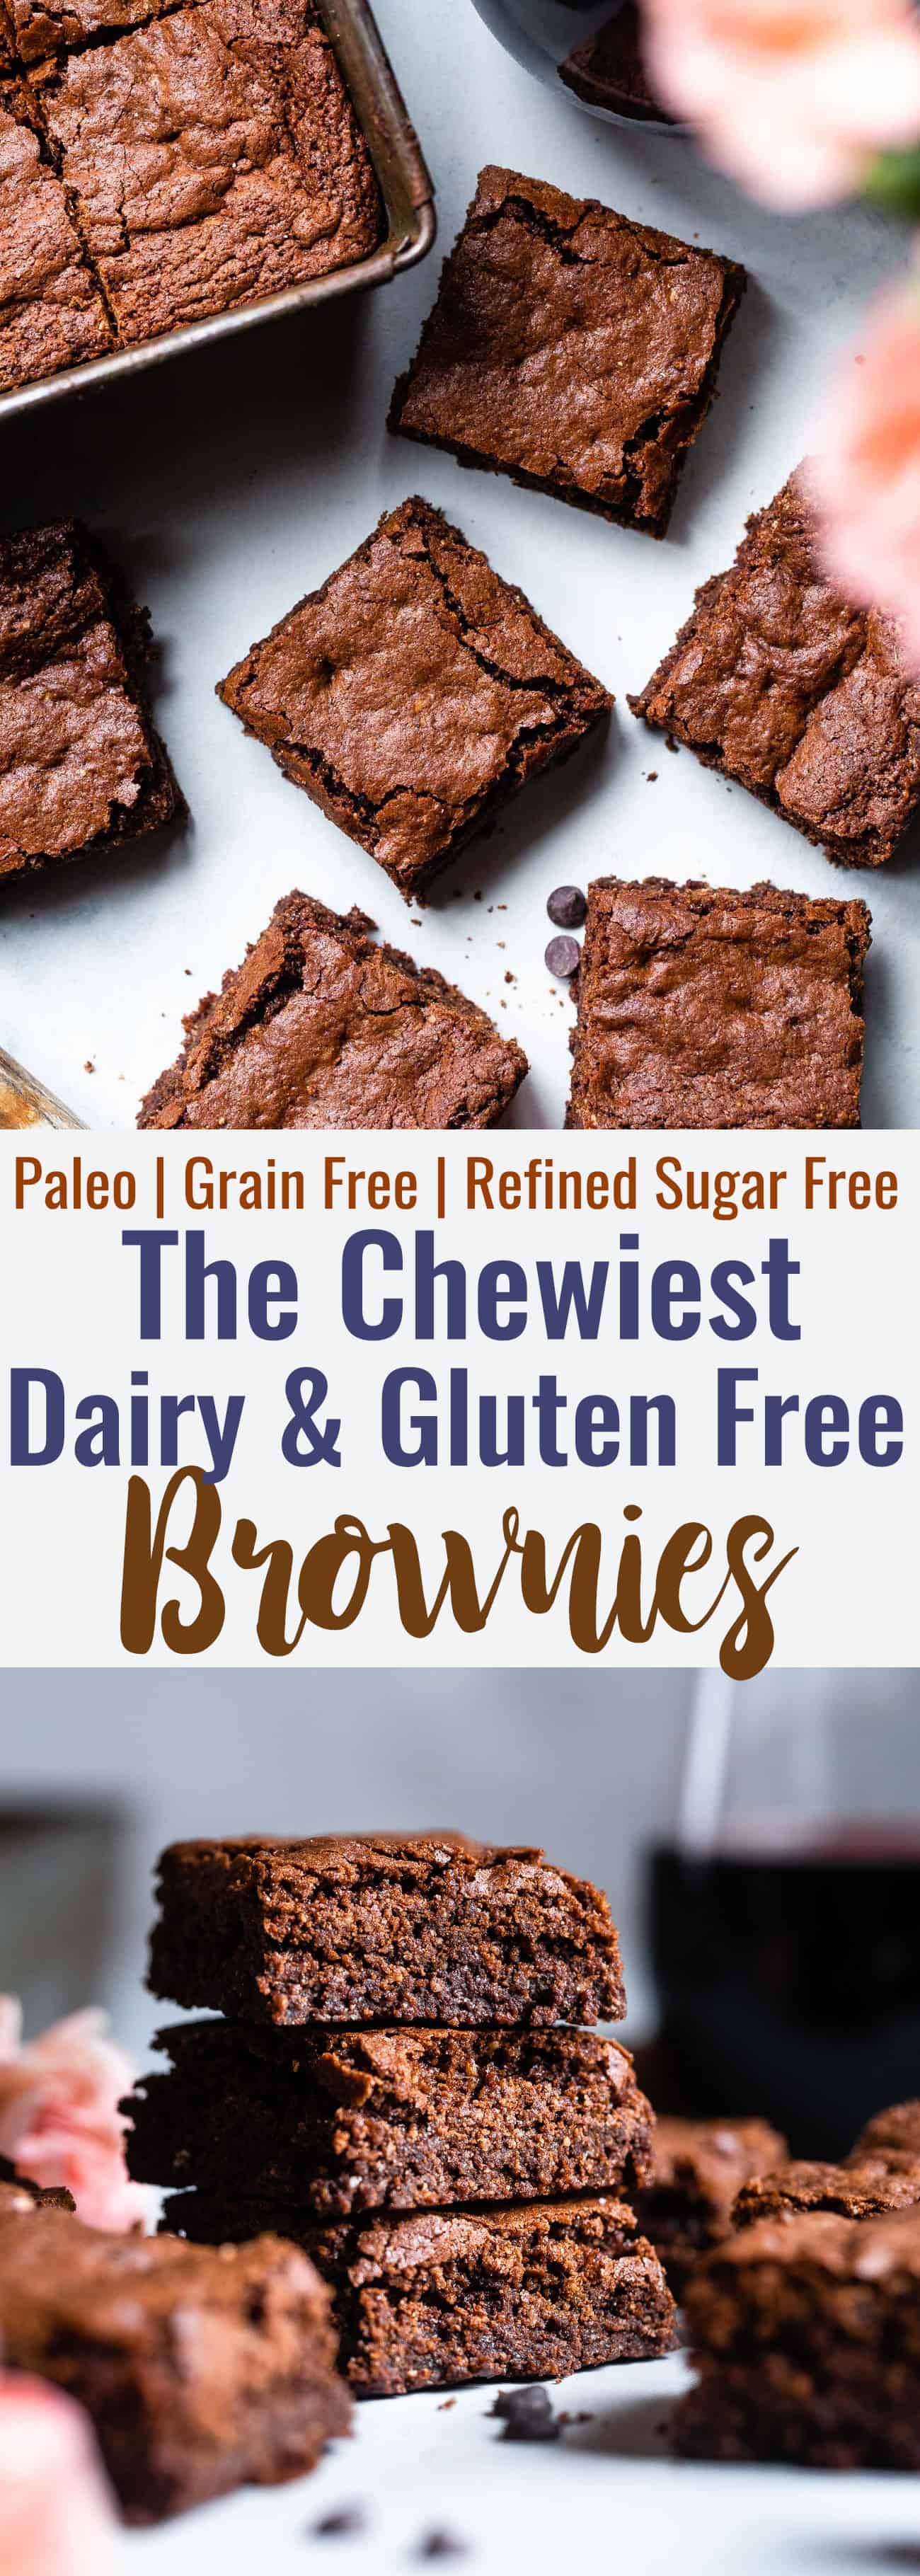 Easy Gluten Free Dairy Free Brownies - These grain free, healthy brownies come together in less than an hour and are SO dense, chewy and FUDGY! Paleo friendly, gluten and dairy free and SO delicious! | #Foodfaithfitness |